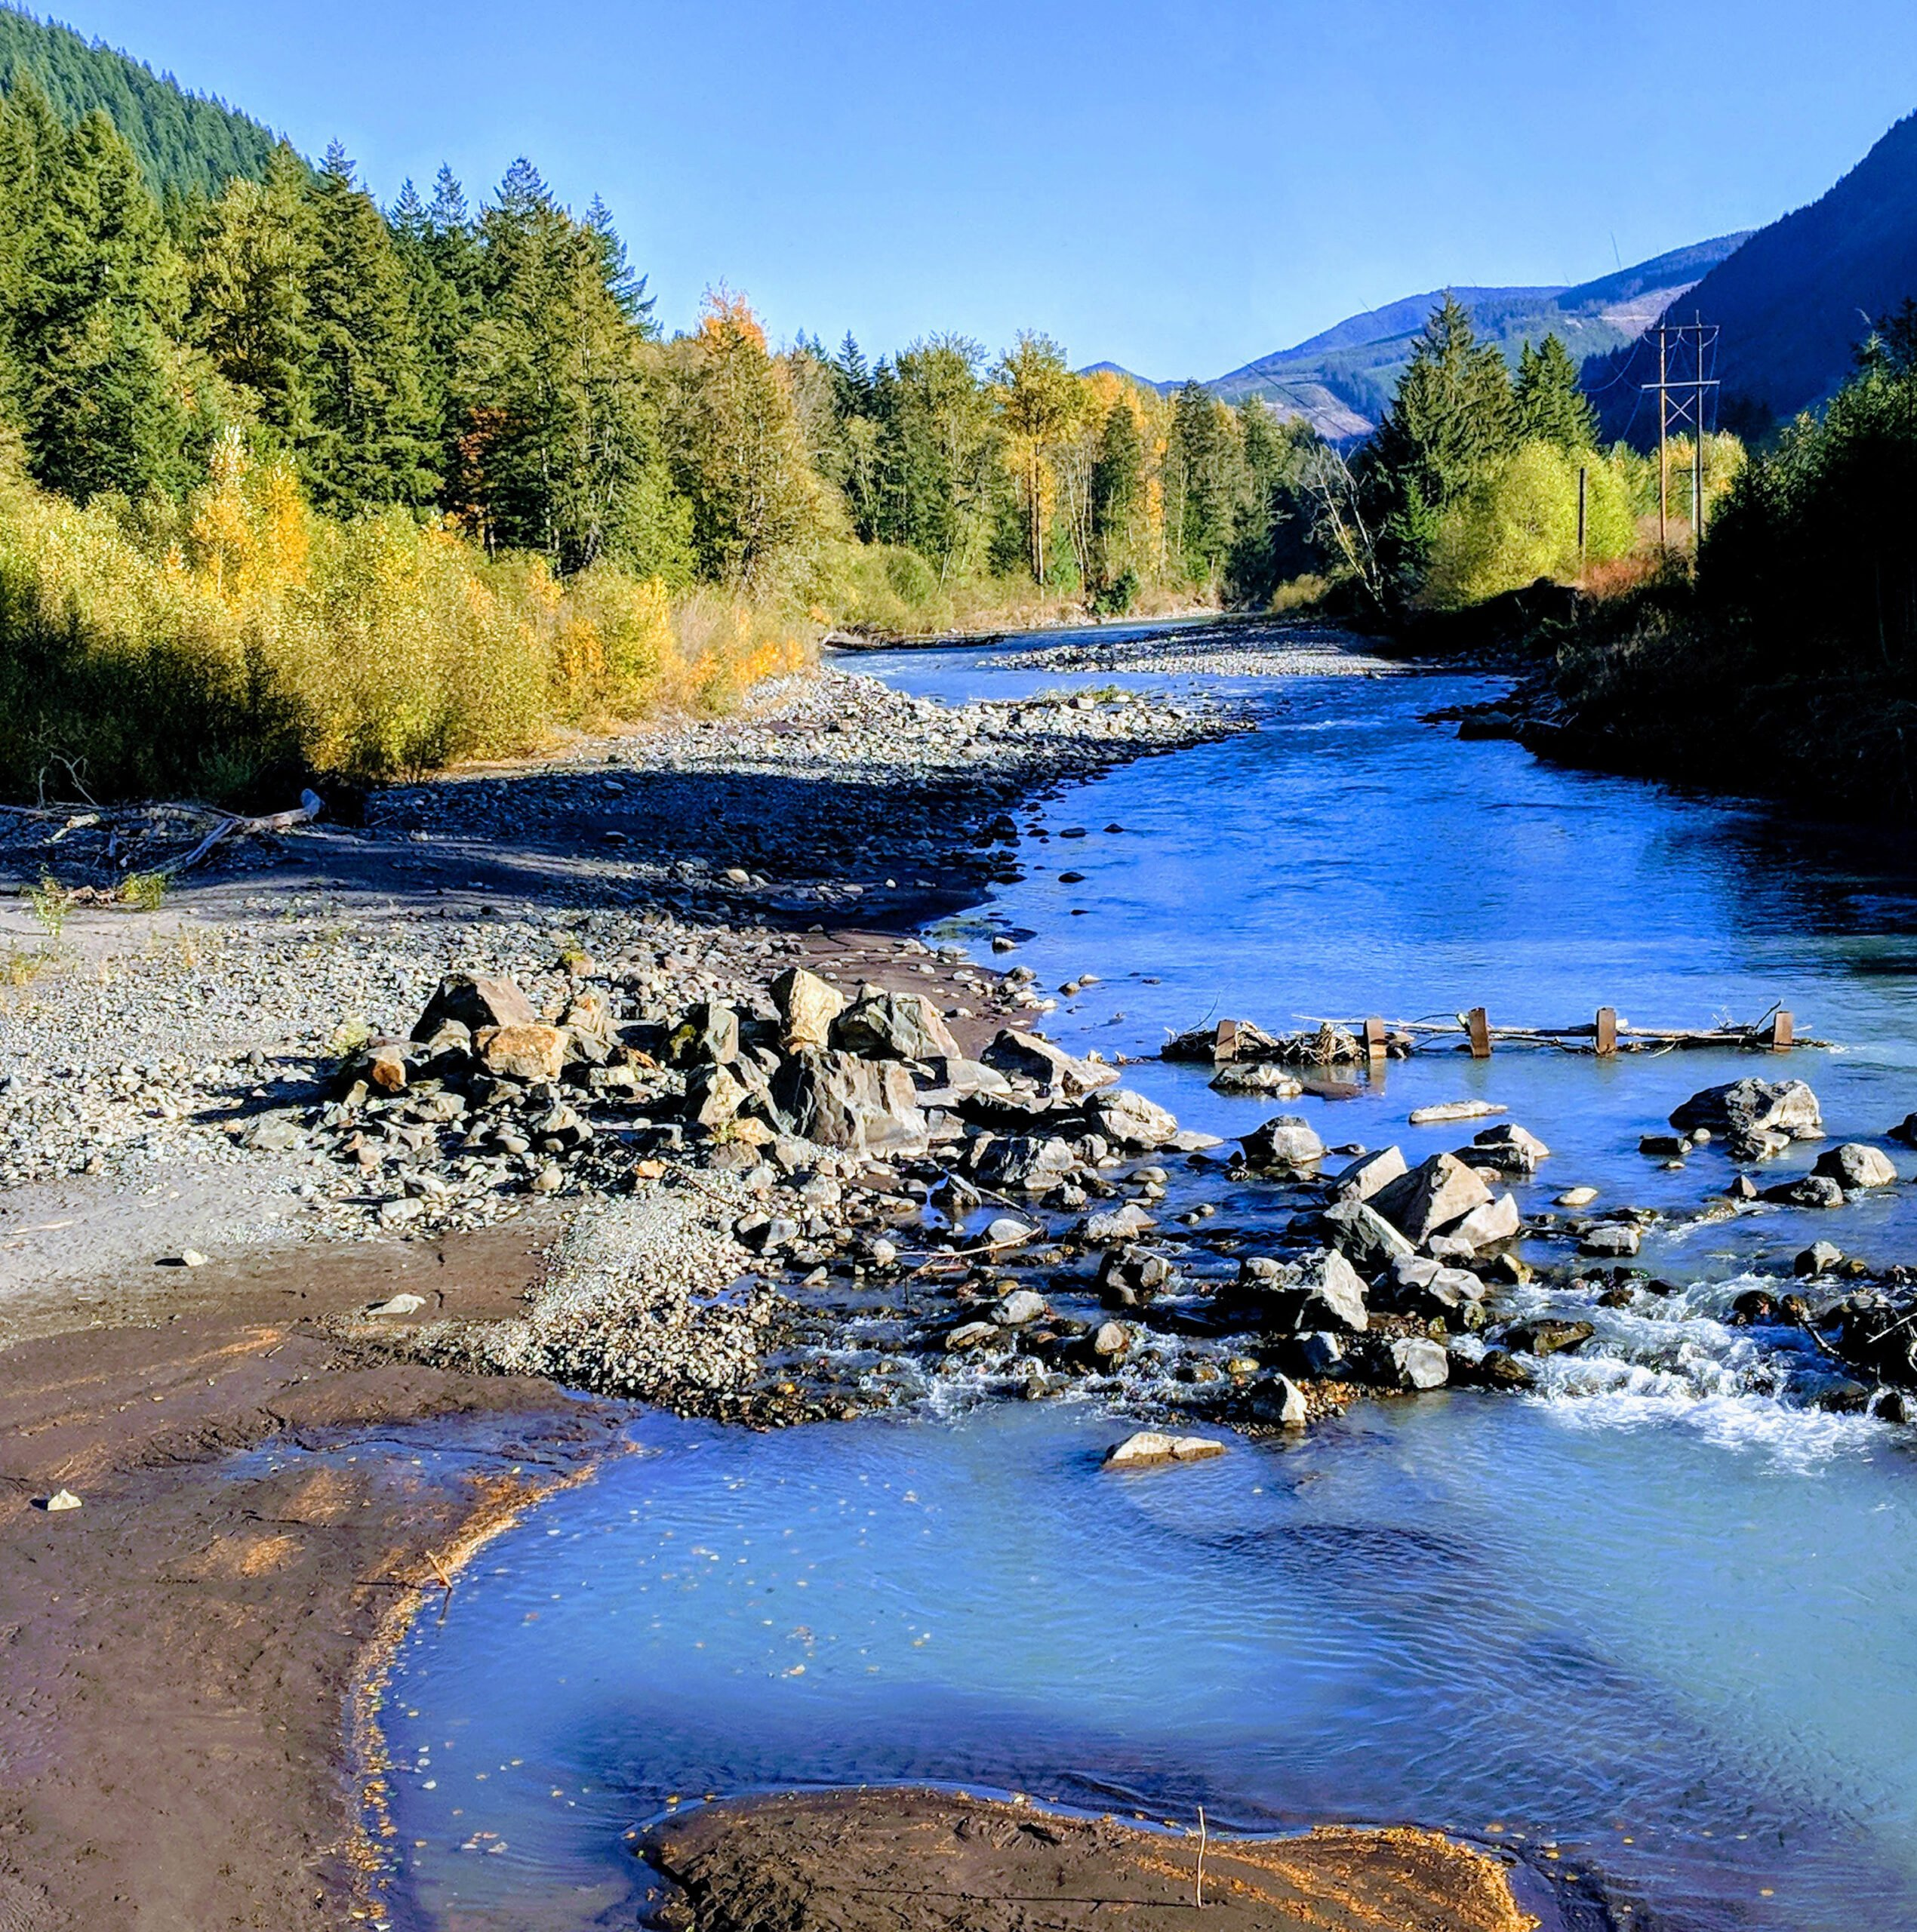 The white river in washington state.